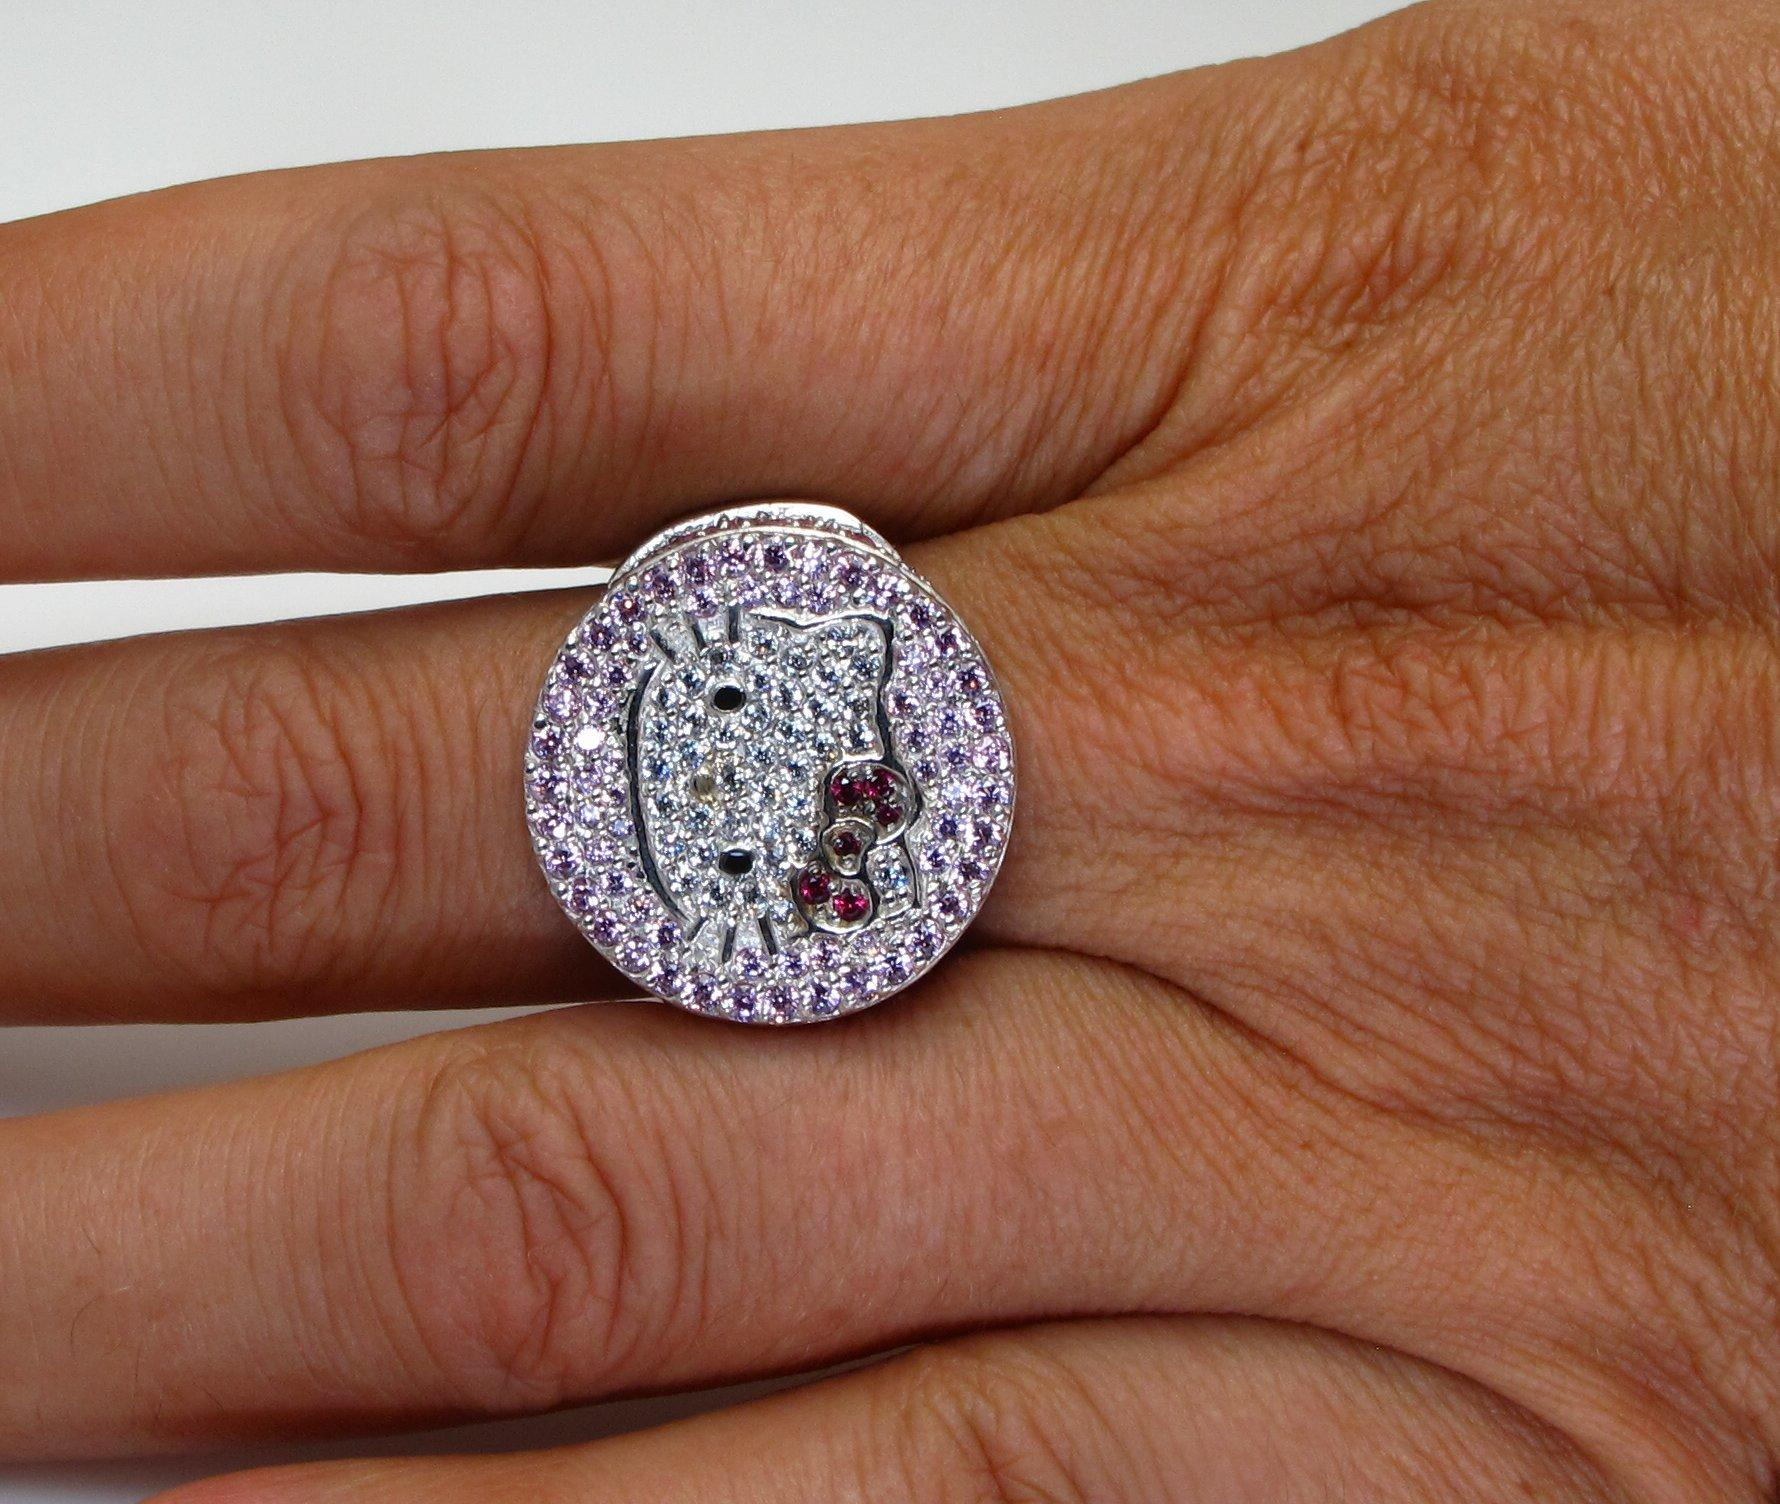 Sterling Silver Large Hello Kitty Ring hello kitty wedding ring Roll over Large image to magnify click Large image to zoom